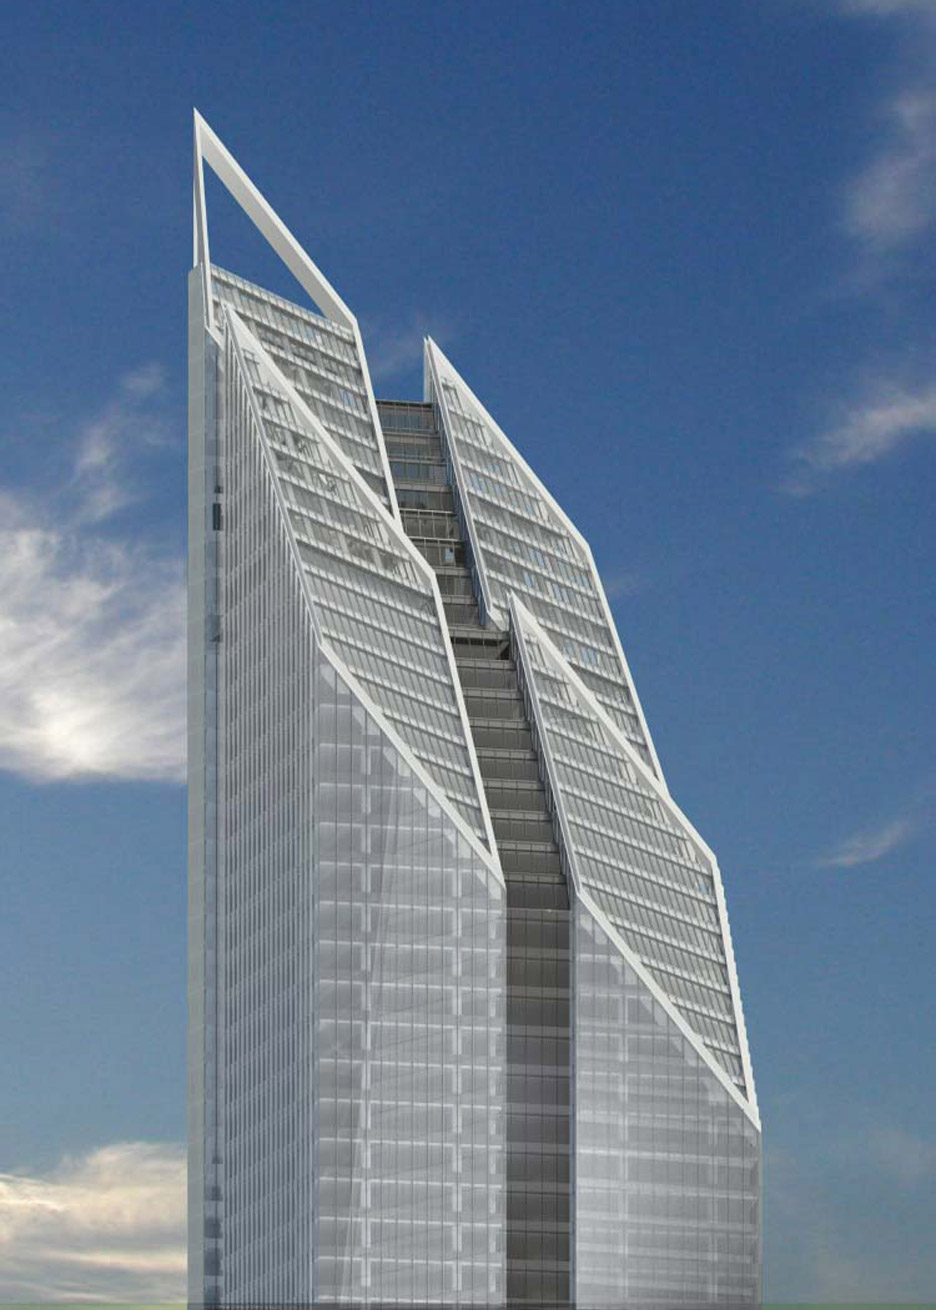 Foster and Partners 2 World Trade Center proposal in New York, USA